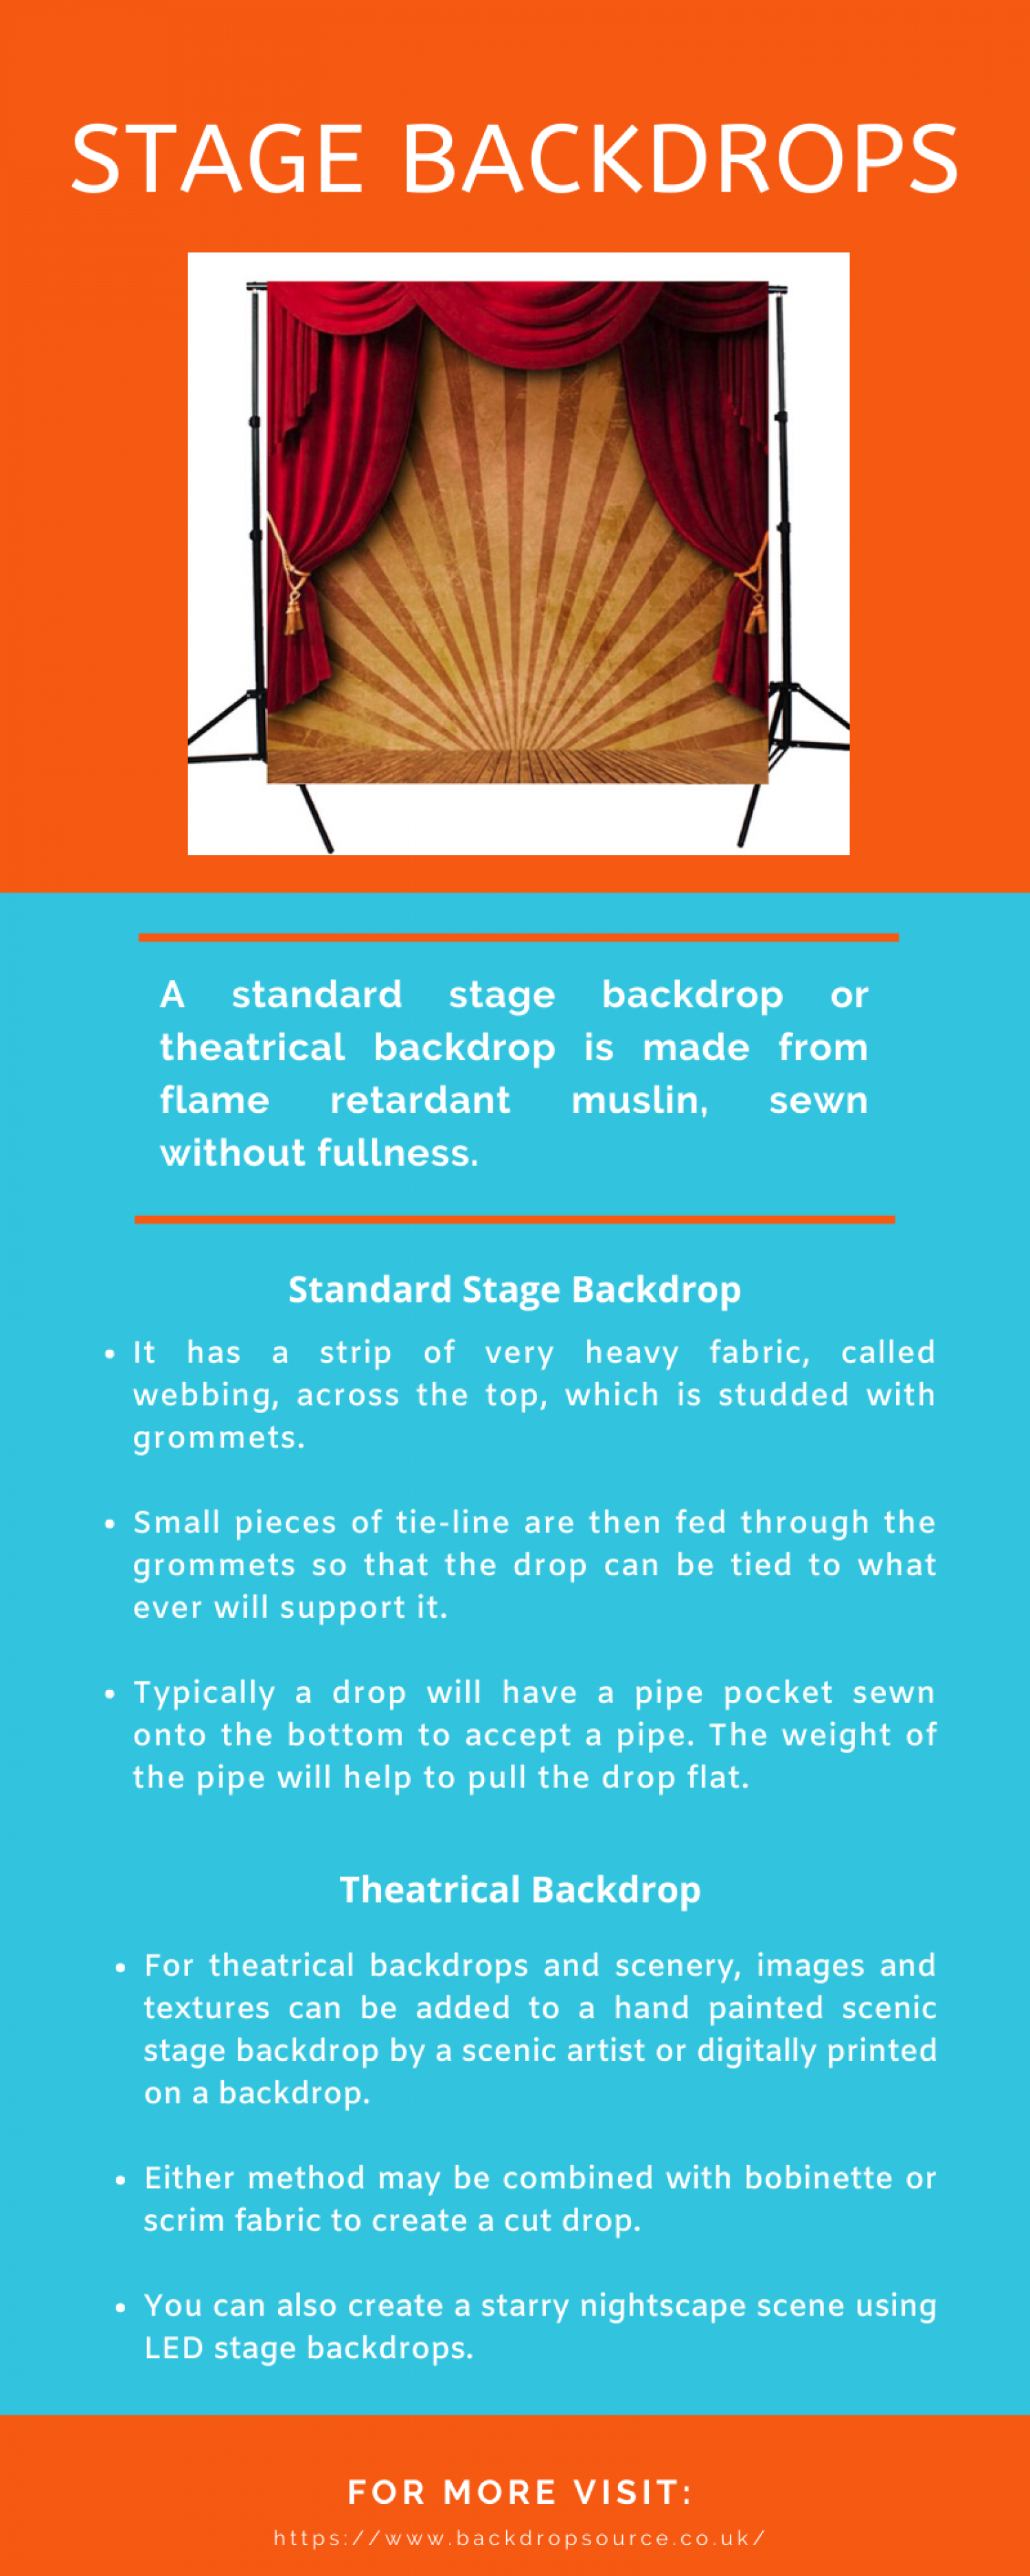 Stage Backdrops Infographic